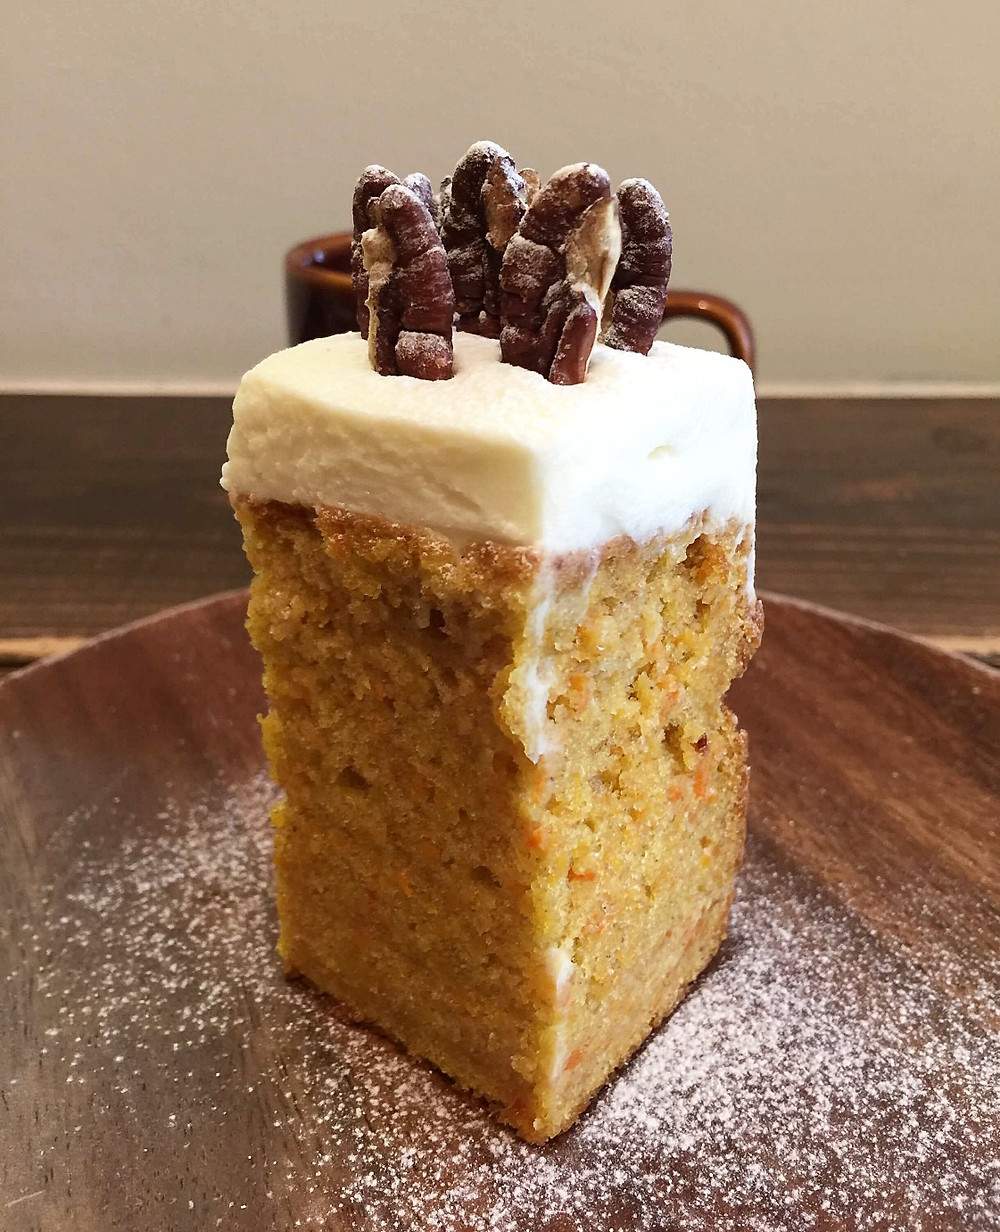 A new carrot cake at ZiZi Bake in Osaka